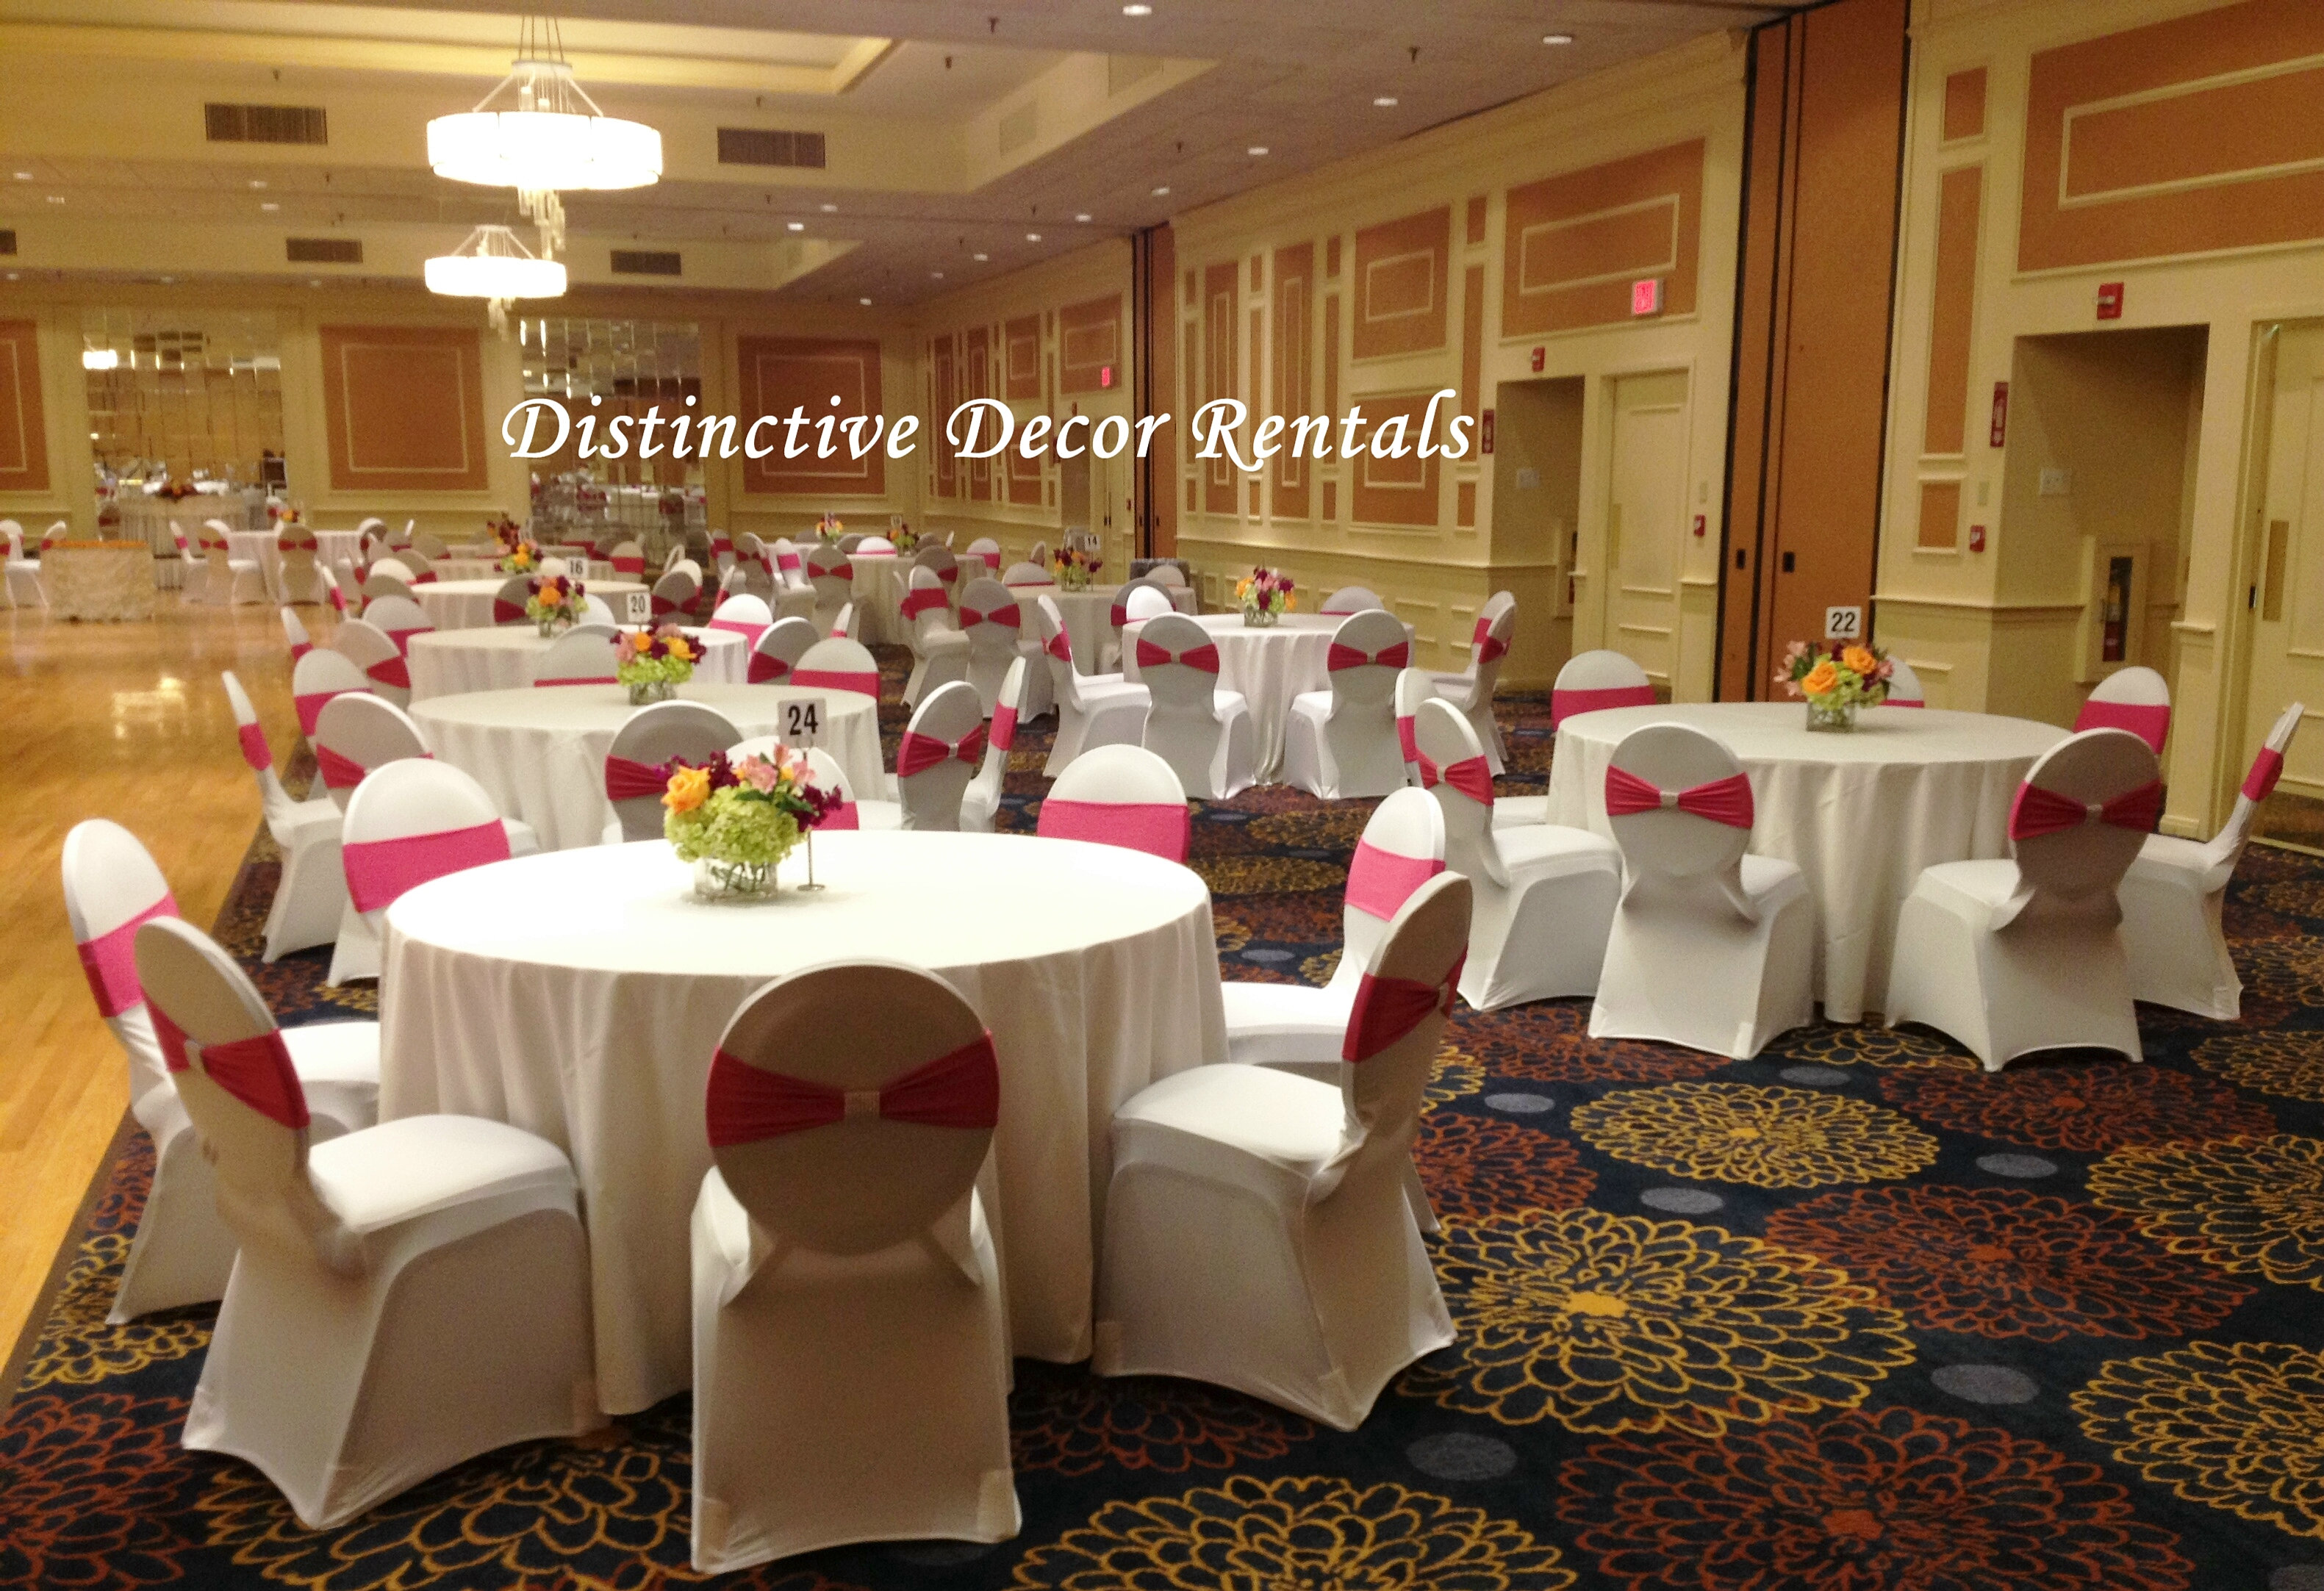 Distinctive Decor Rentals Celebrity Events Home Stretch Chair Covers Chair Bands